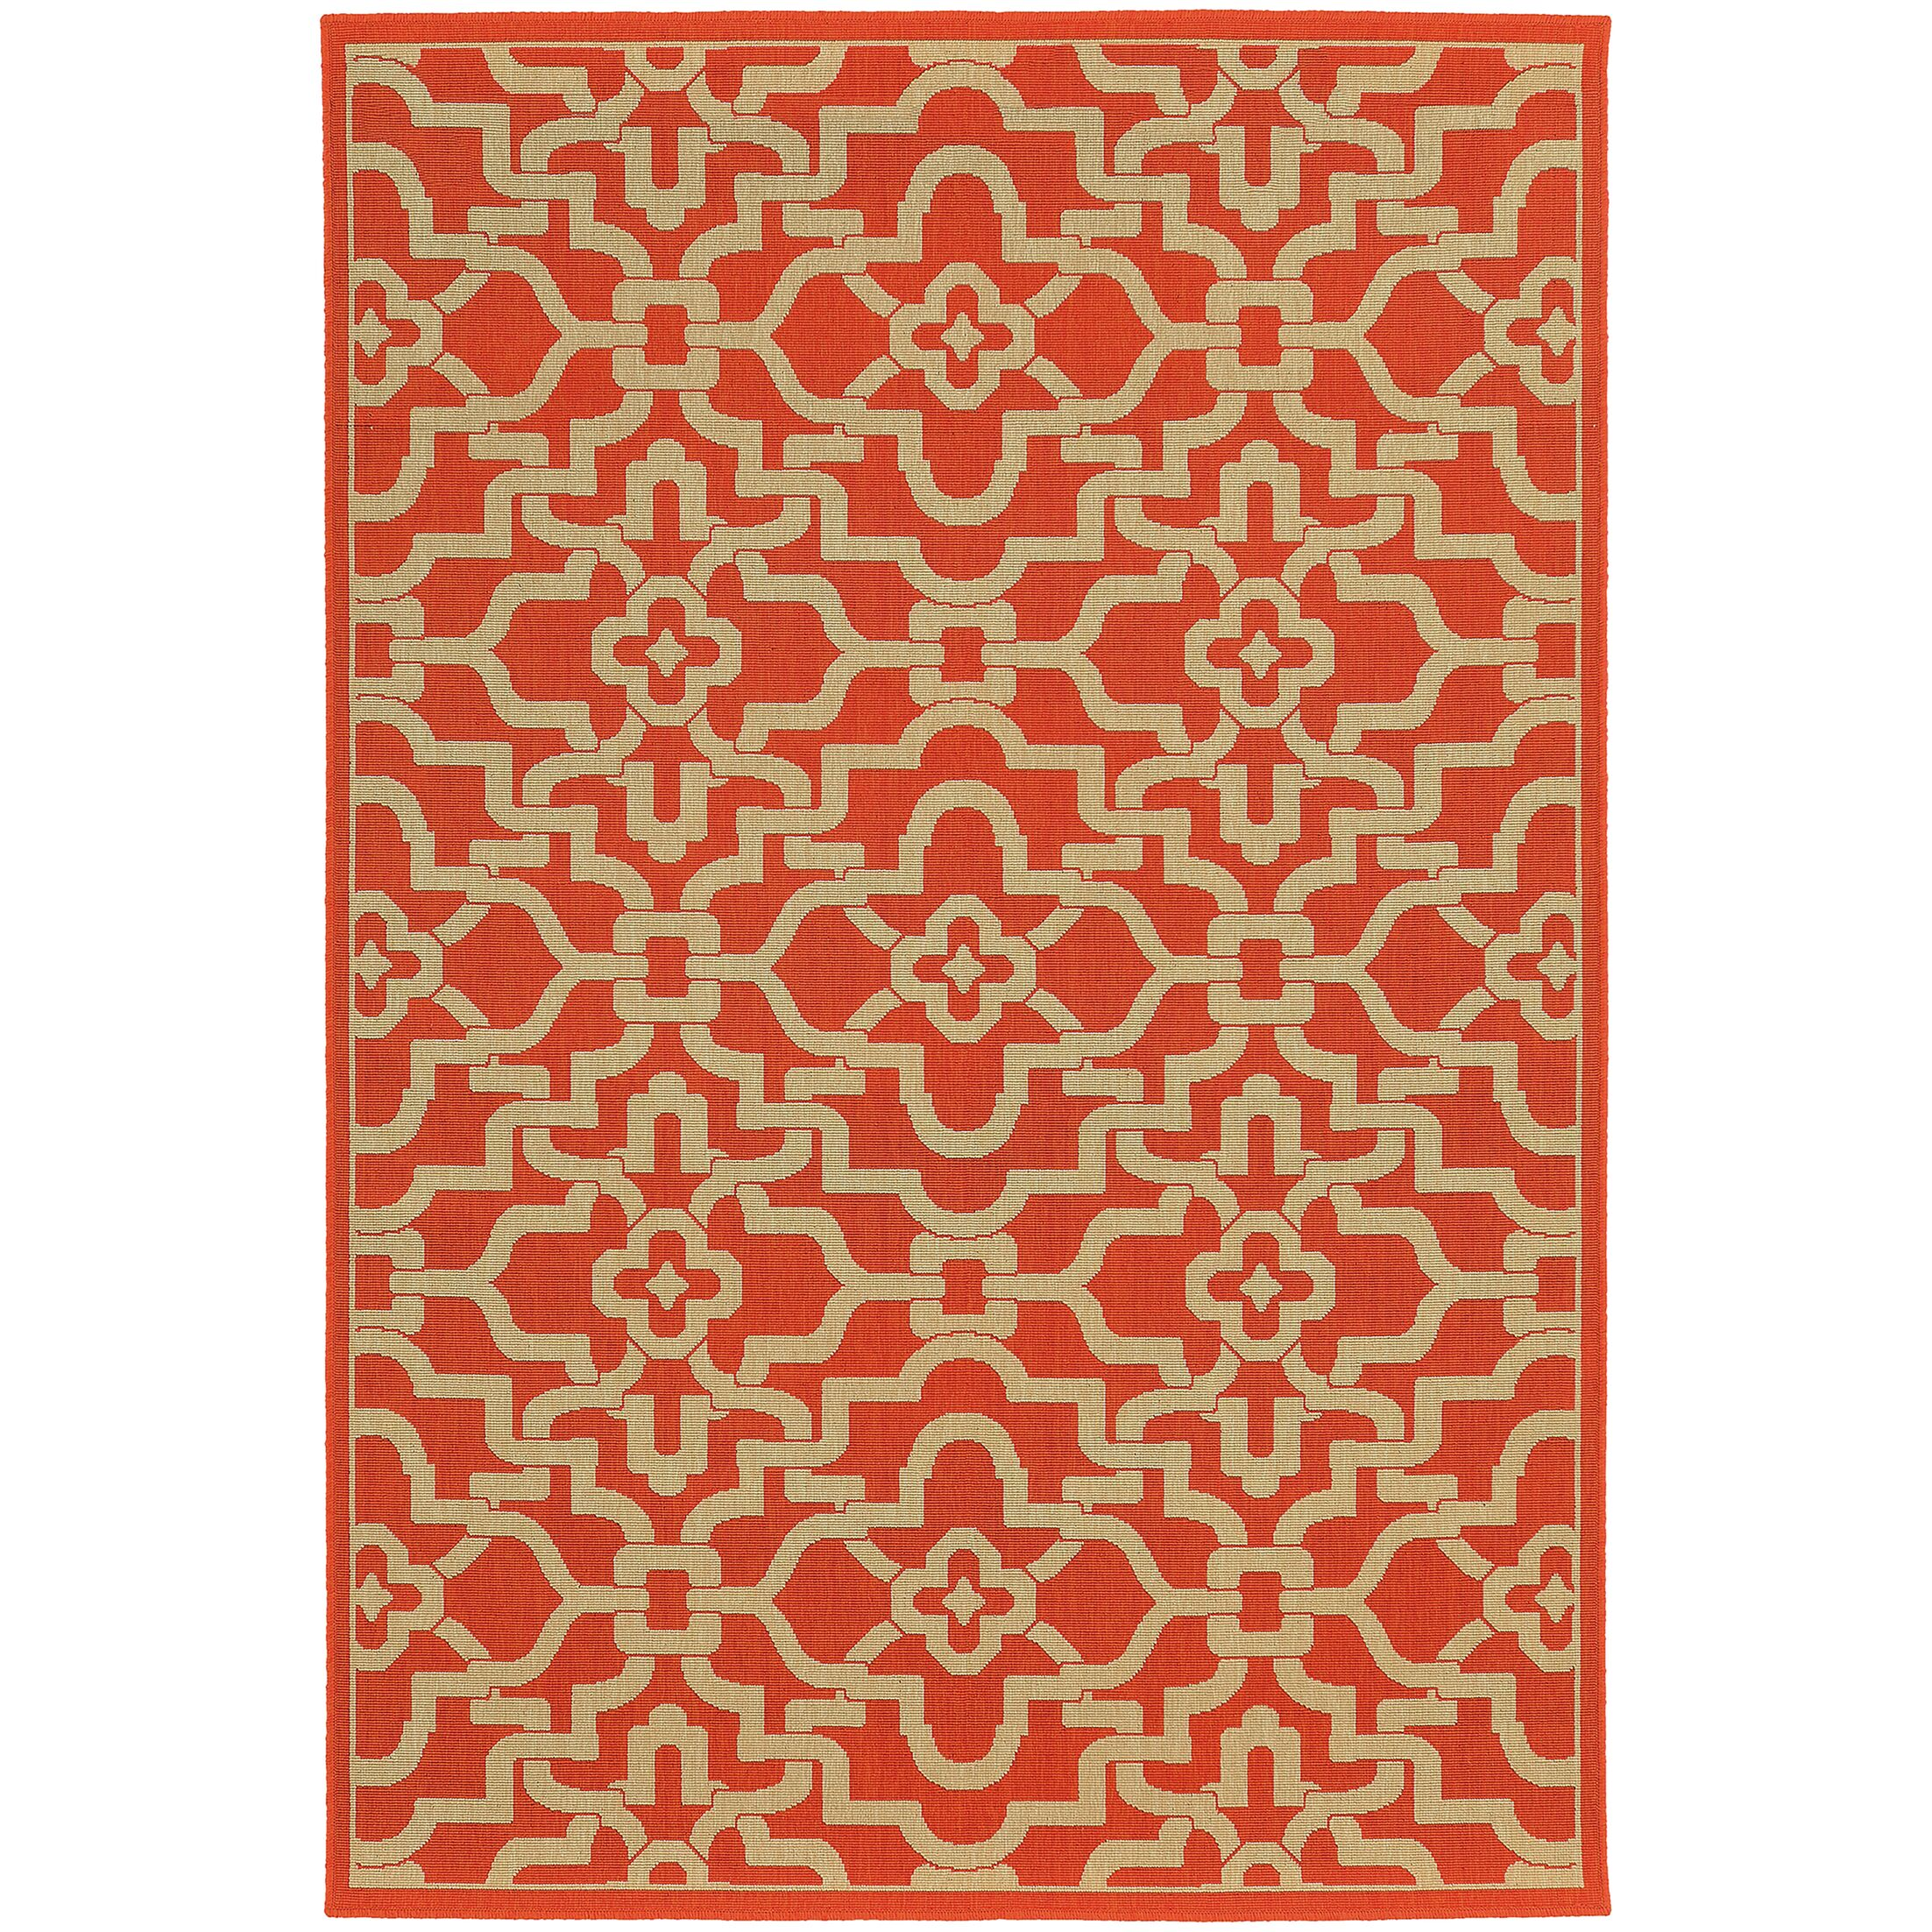 Seaside Orange & Beige Area Rug Rug Size: Round 7'10